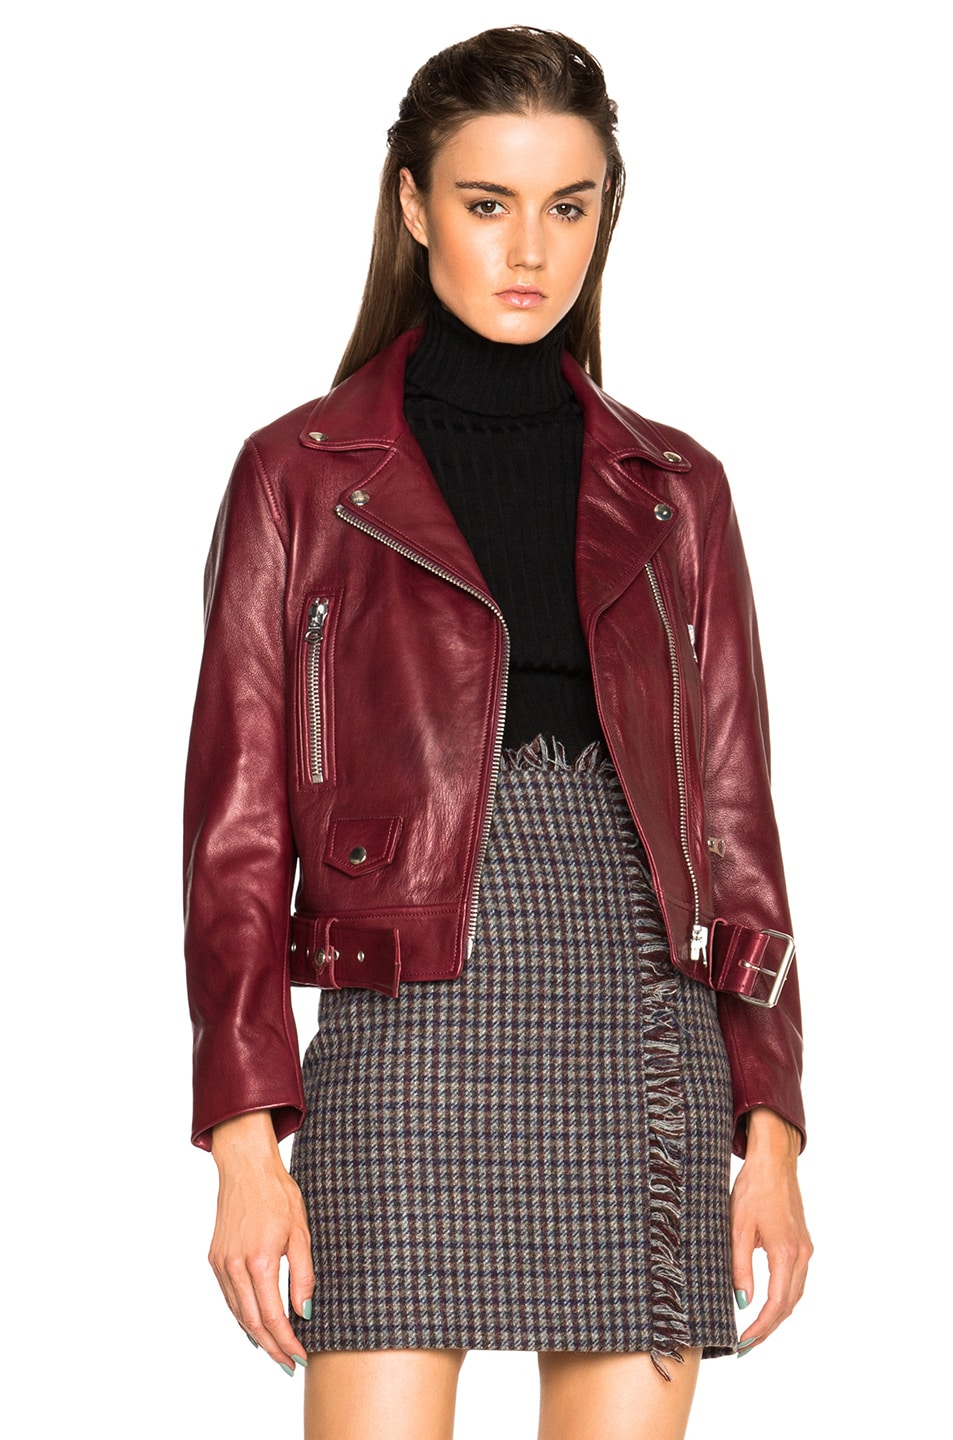 acne maroon red